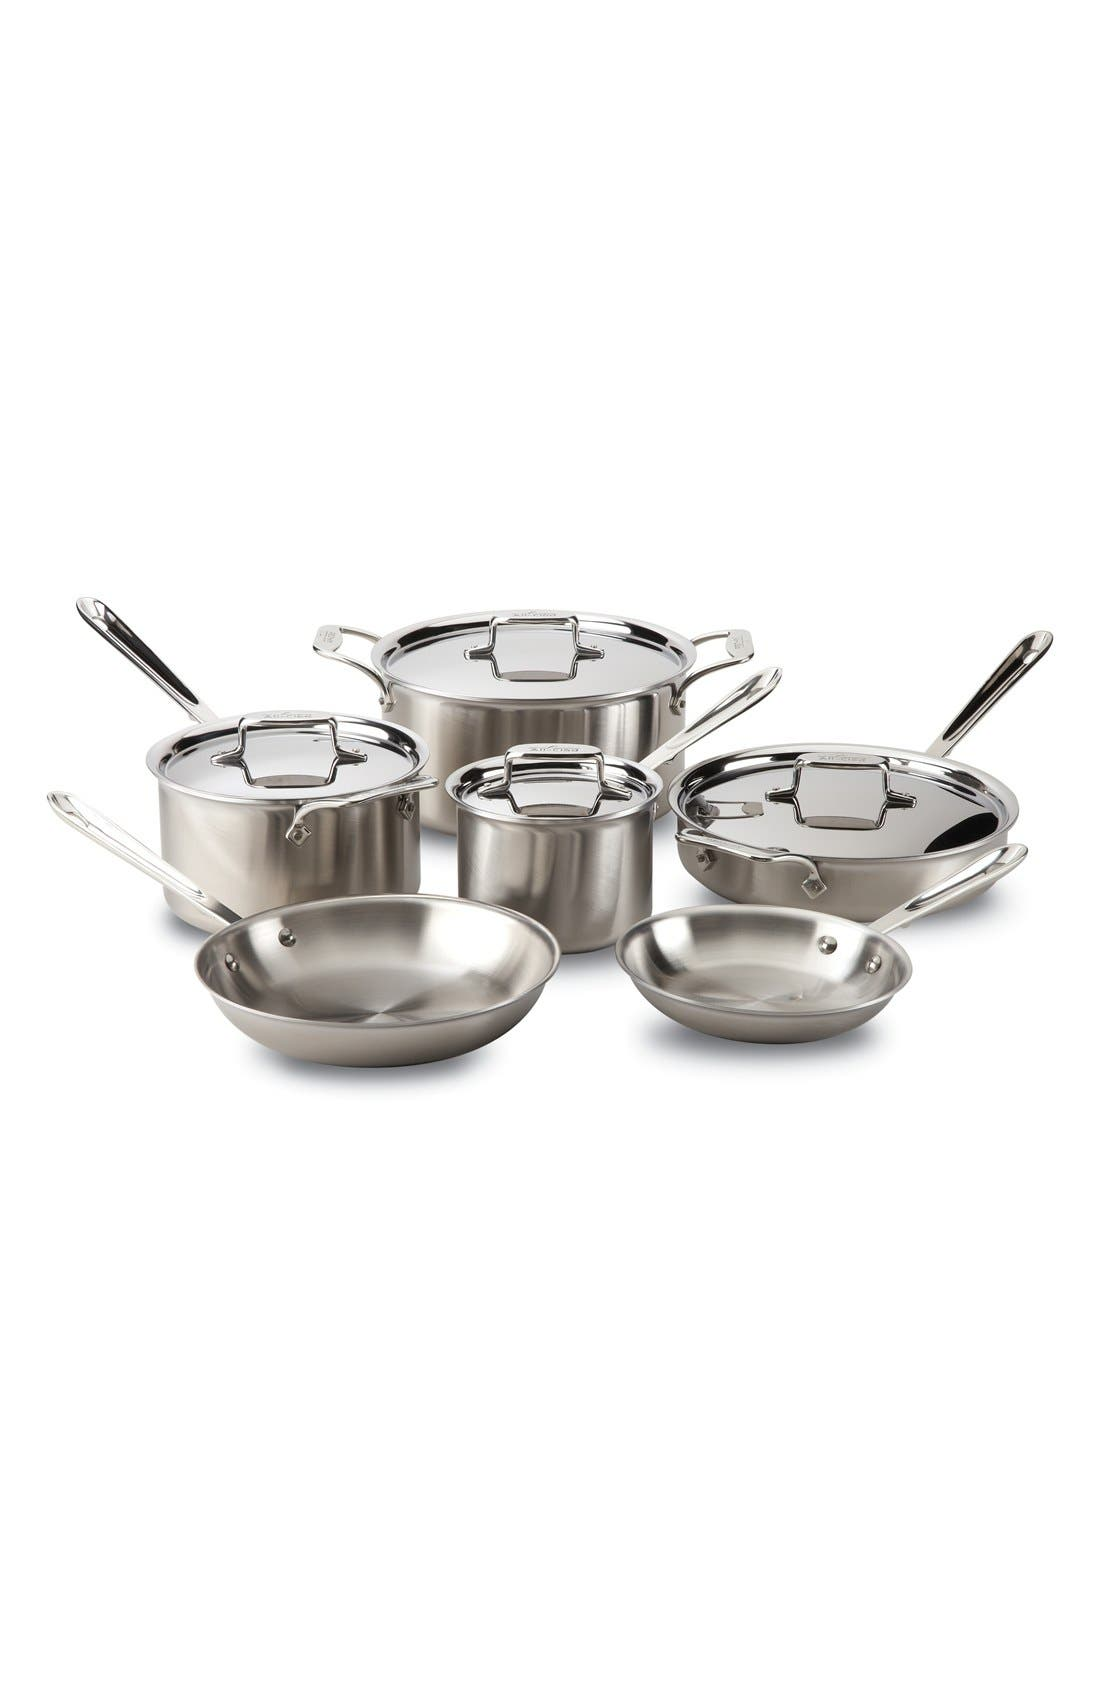 All-Clad 'd5®' Brushed Stainless Steel Cookware Set (10-Piece)